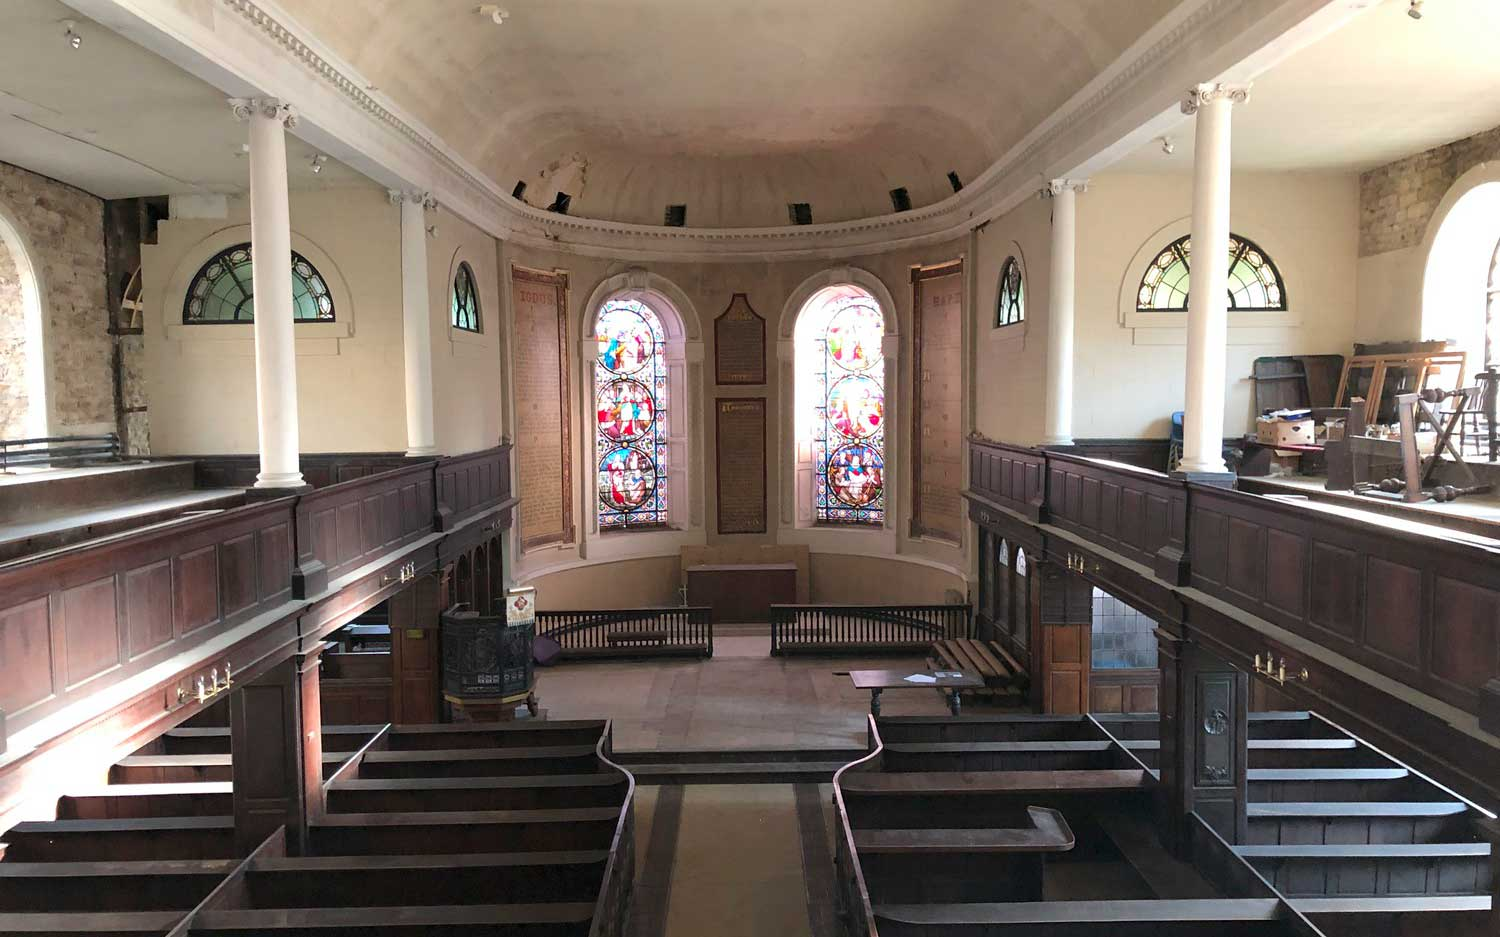 St John's the Evangelist project moves forward with anonymous donation